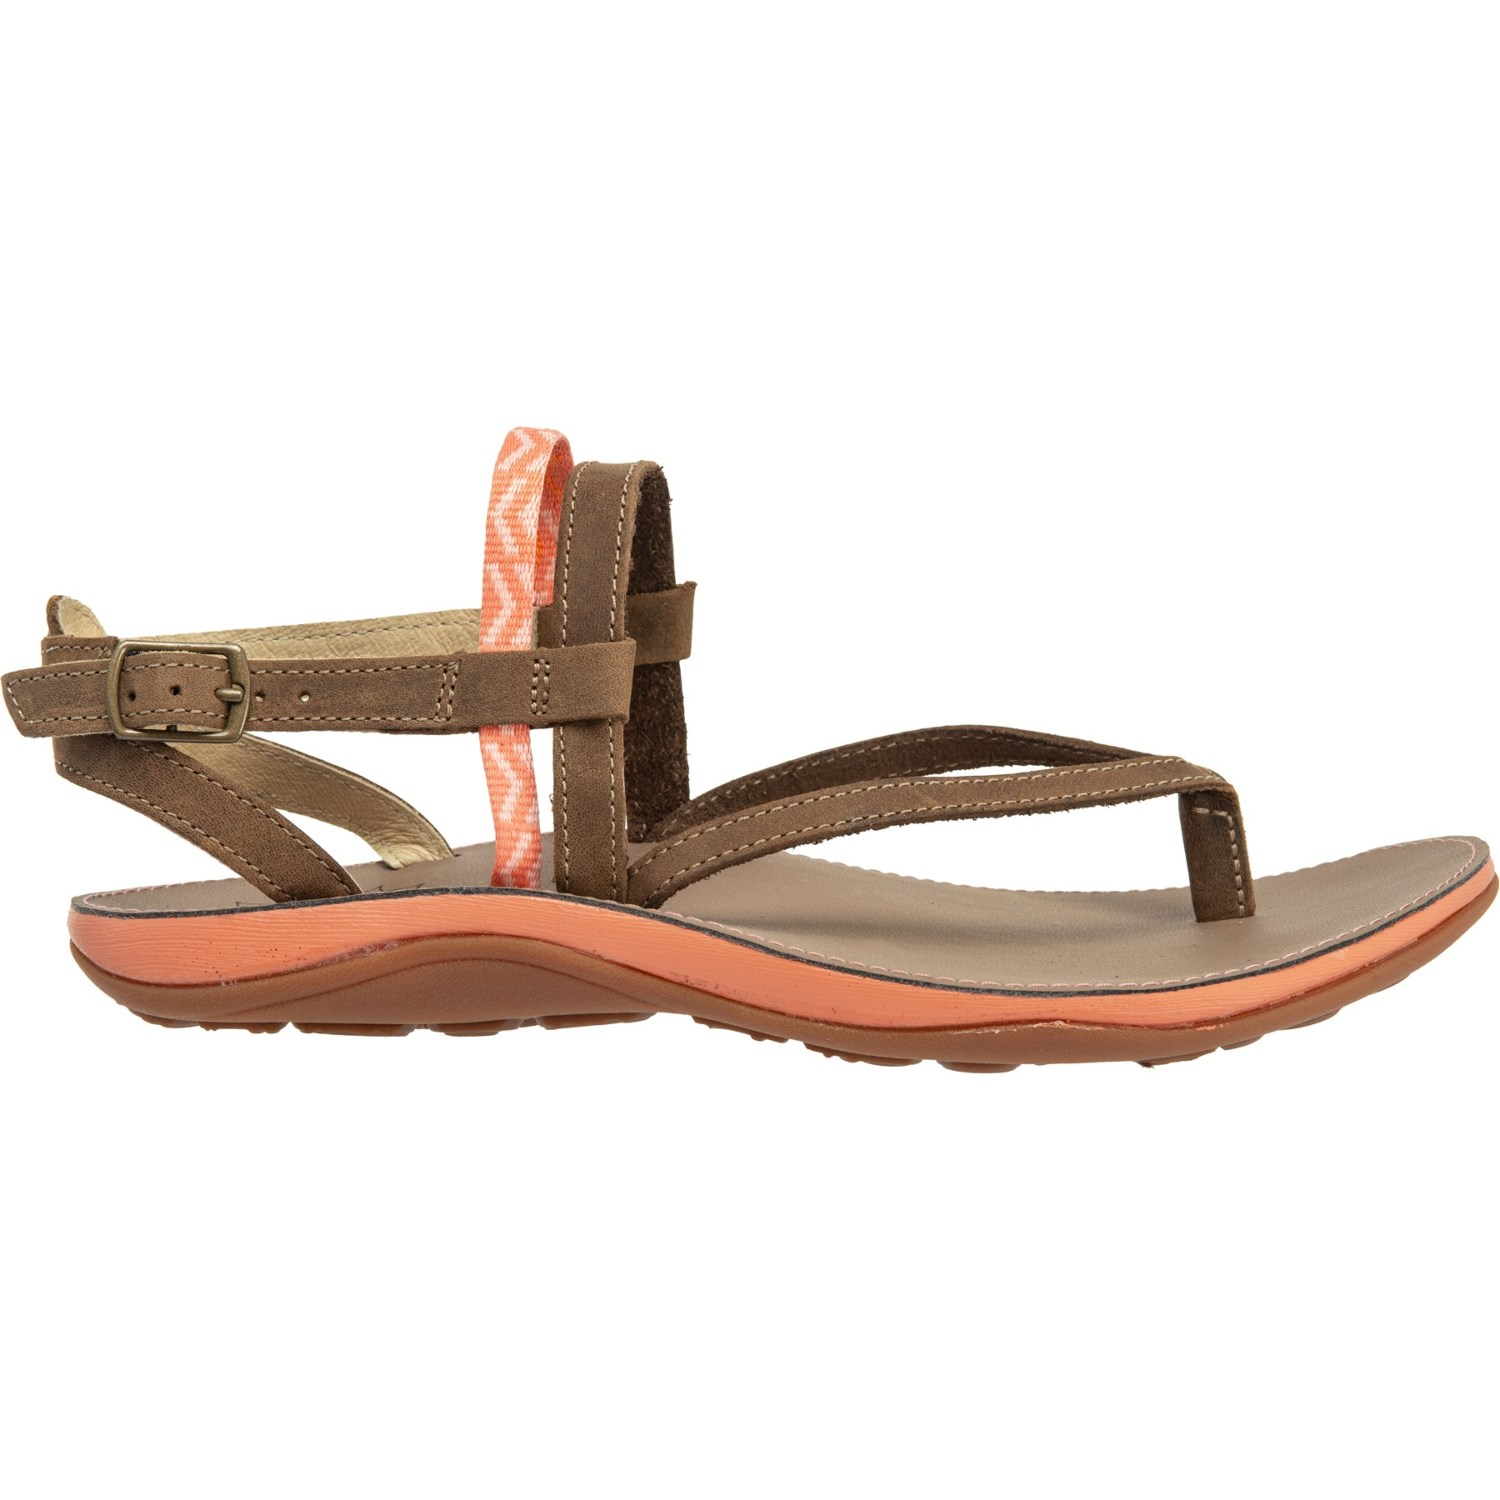 edf93d32a0d Chaco Loveland Sandals (For Women) - Save 47%